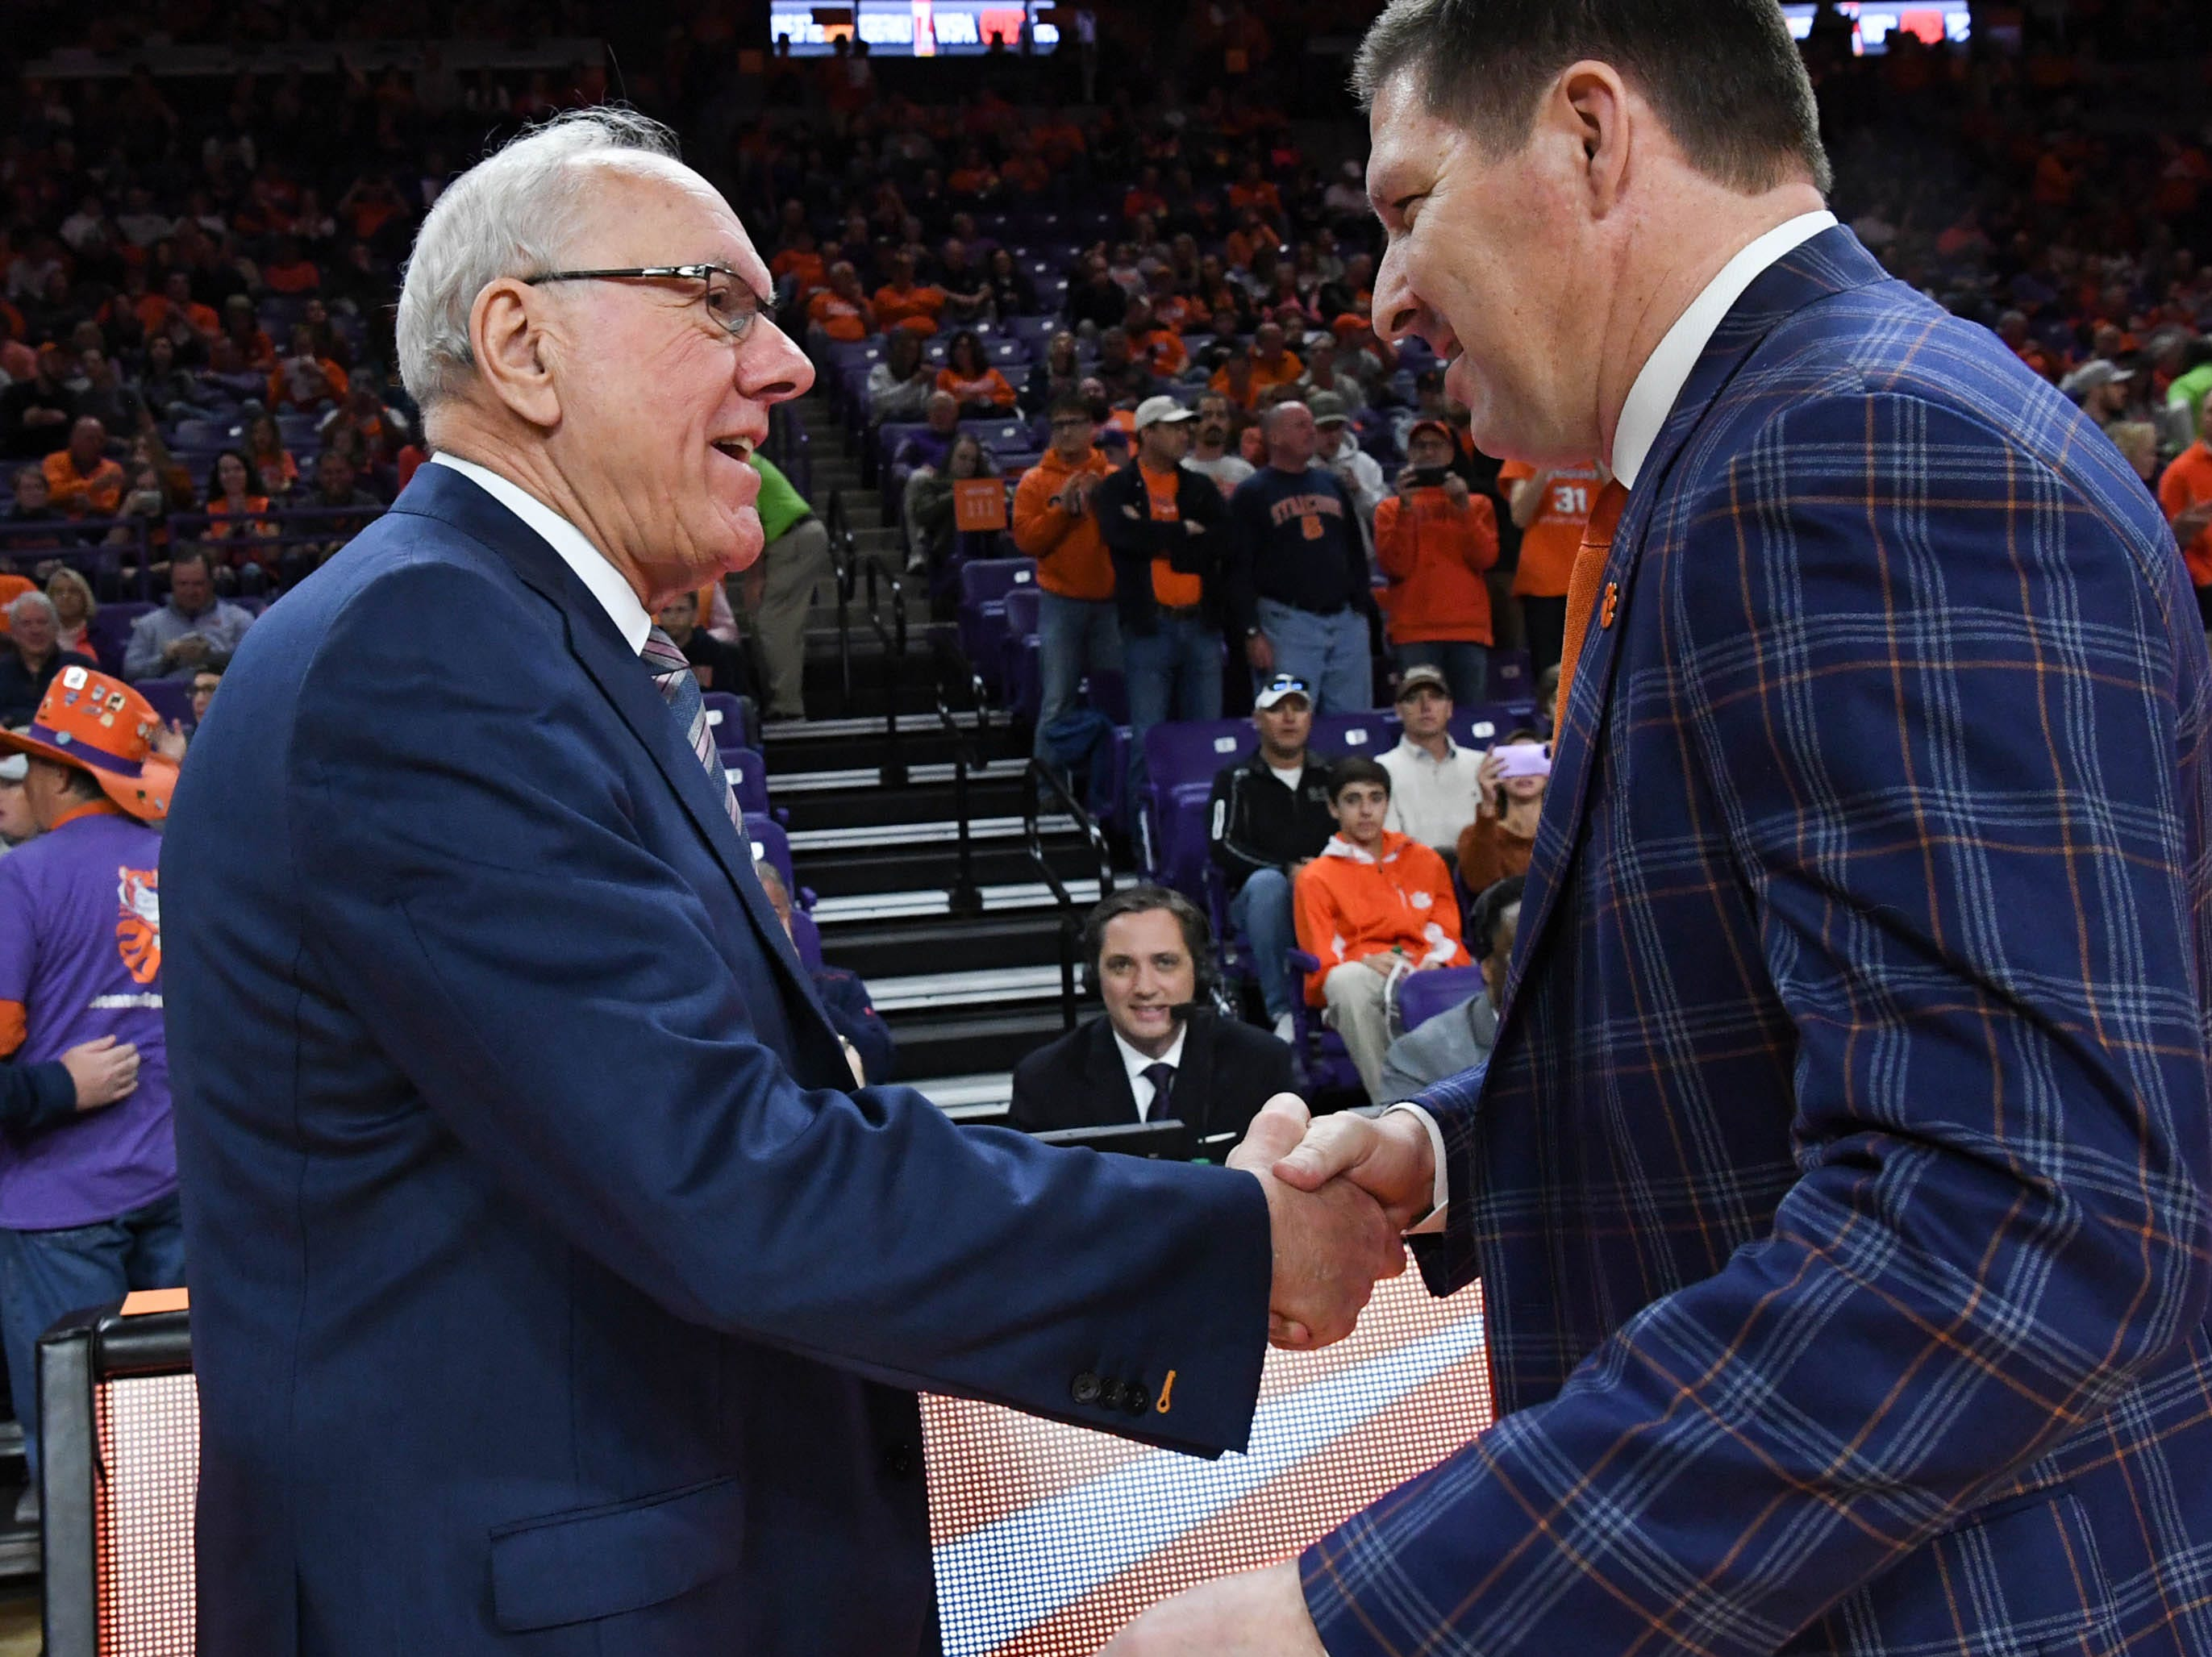 Syracuse head coach Jim Boeheim, left, and Clemson head coach Brad Brownell shake hands before the game against Syracuse Saturday, March 9, 2019.